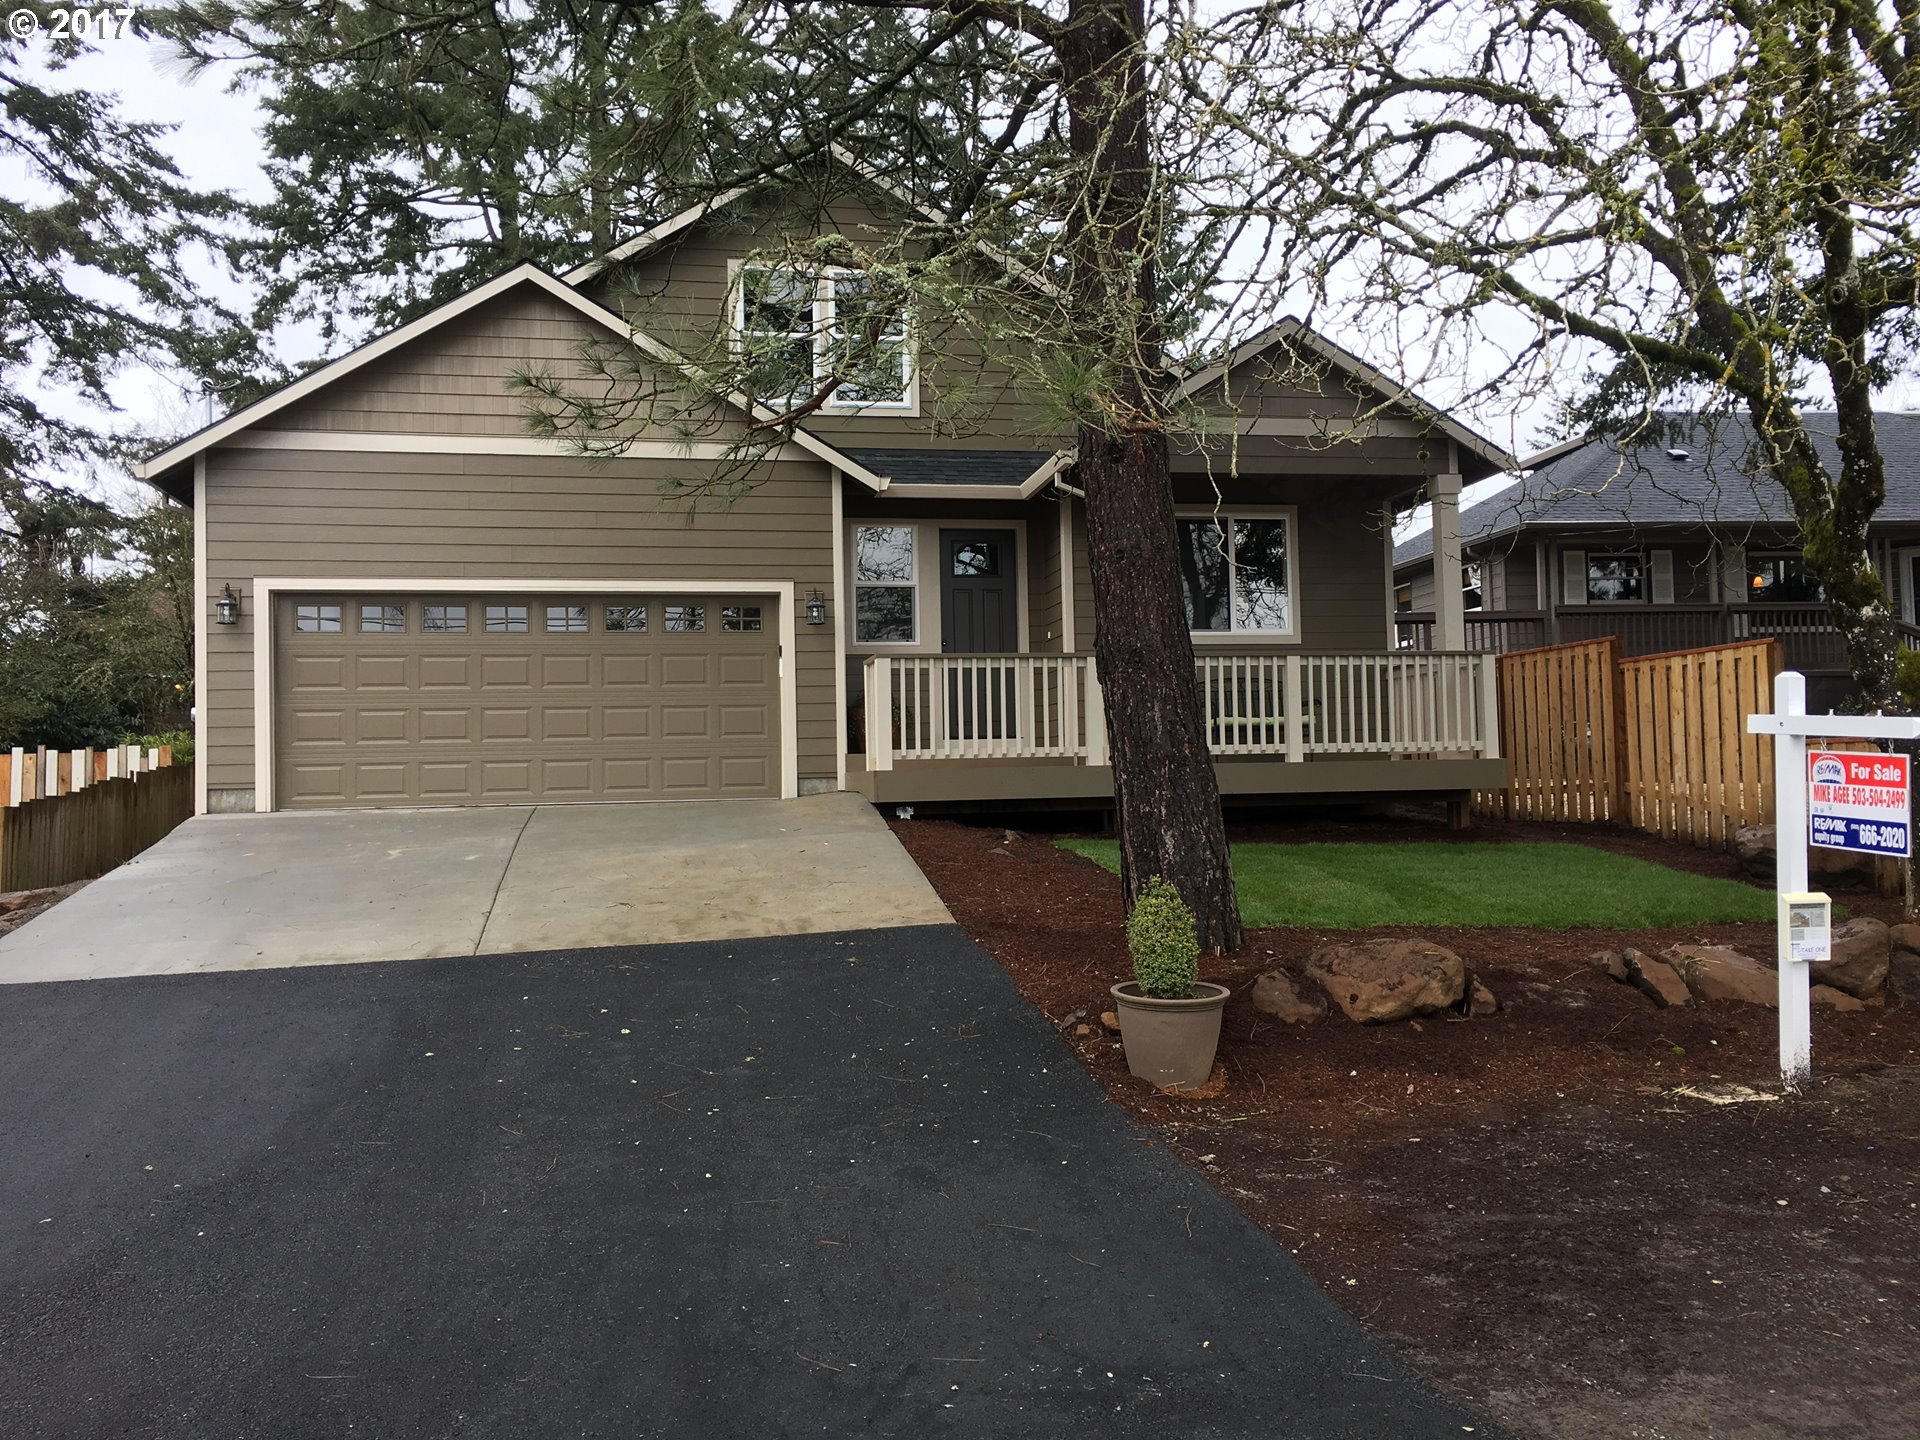 12675 SE 25TH AVE, Milwaukie, OR 97222